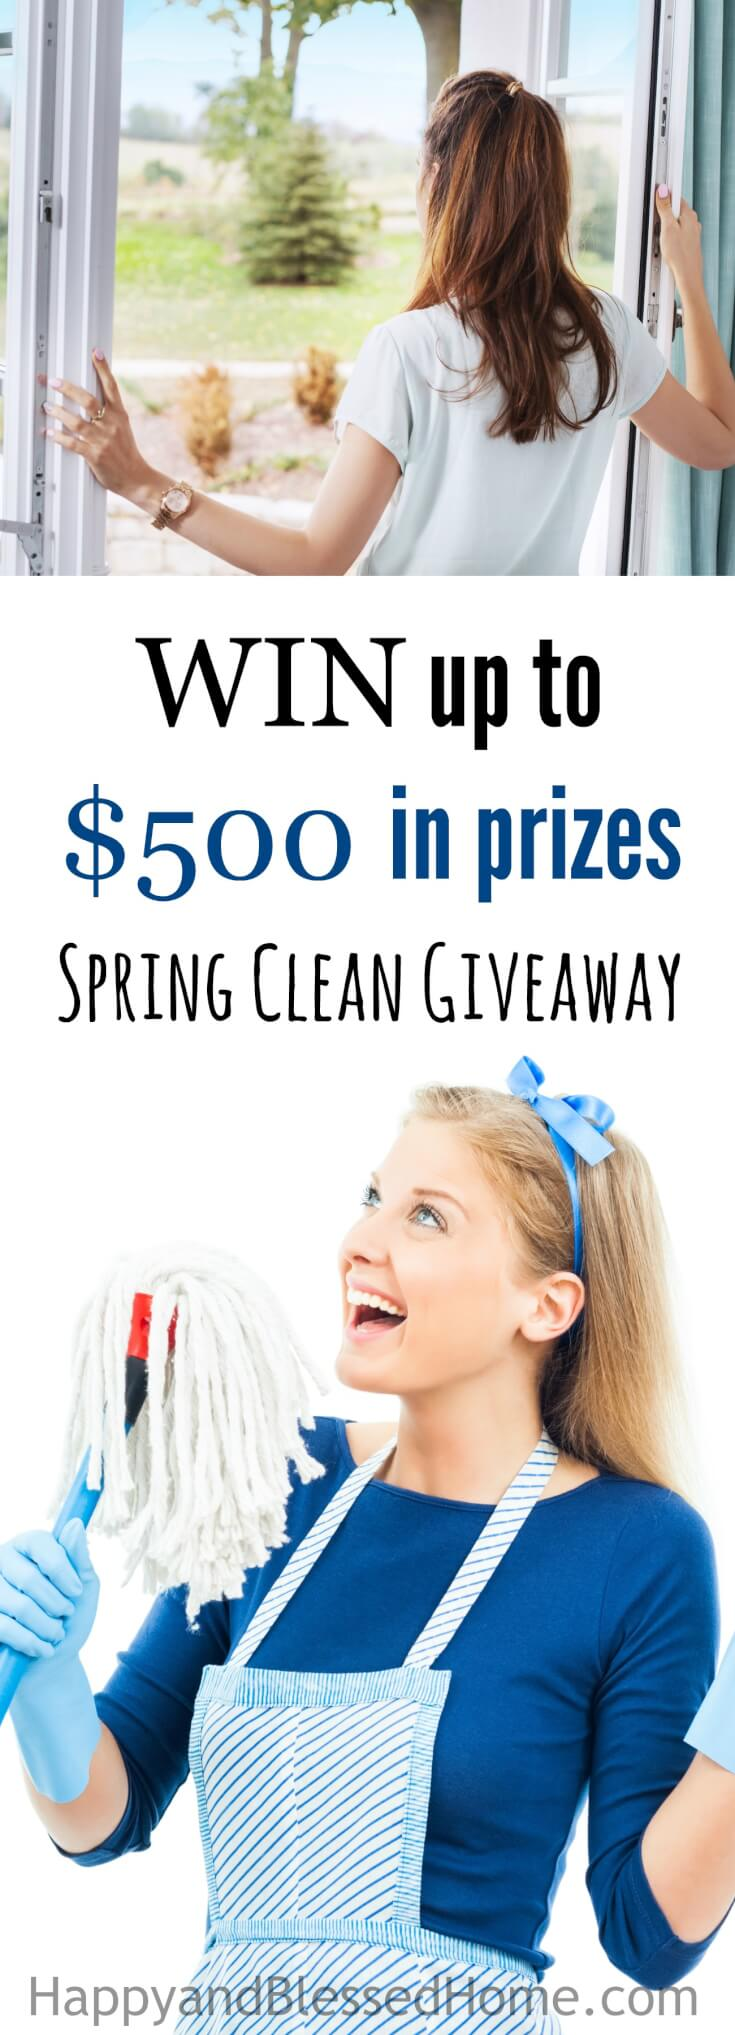 WOOT! It's a Spring Cleaning Giveaway with a prize pack valued at up to $500. Why not make that spring cleaning effort a bit more fun with this giveaway!